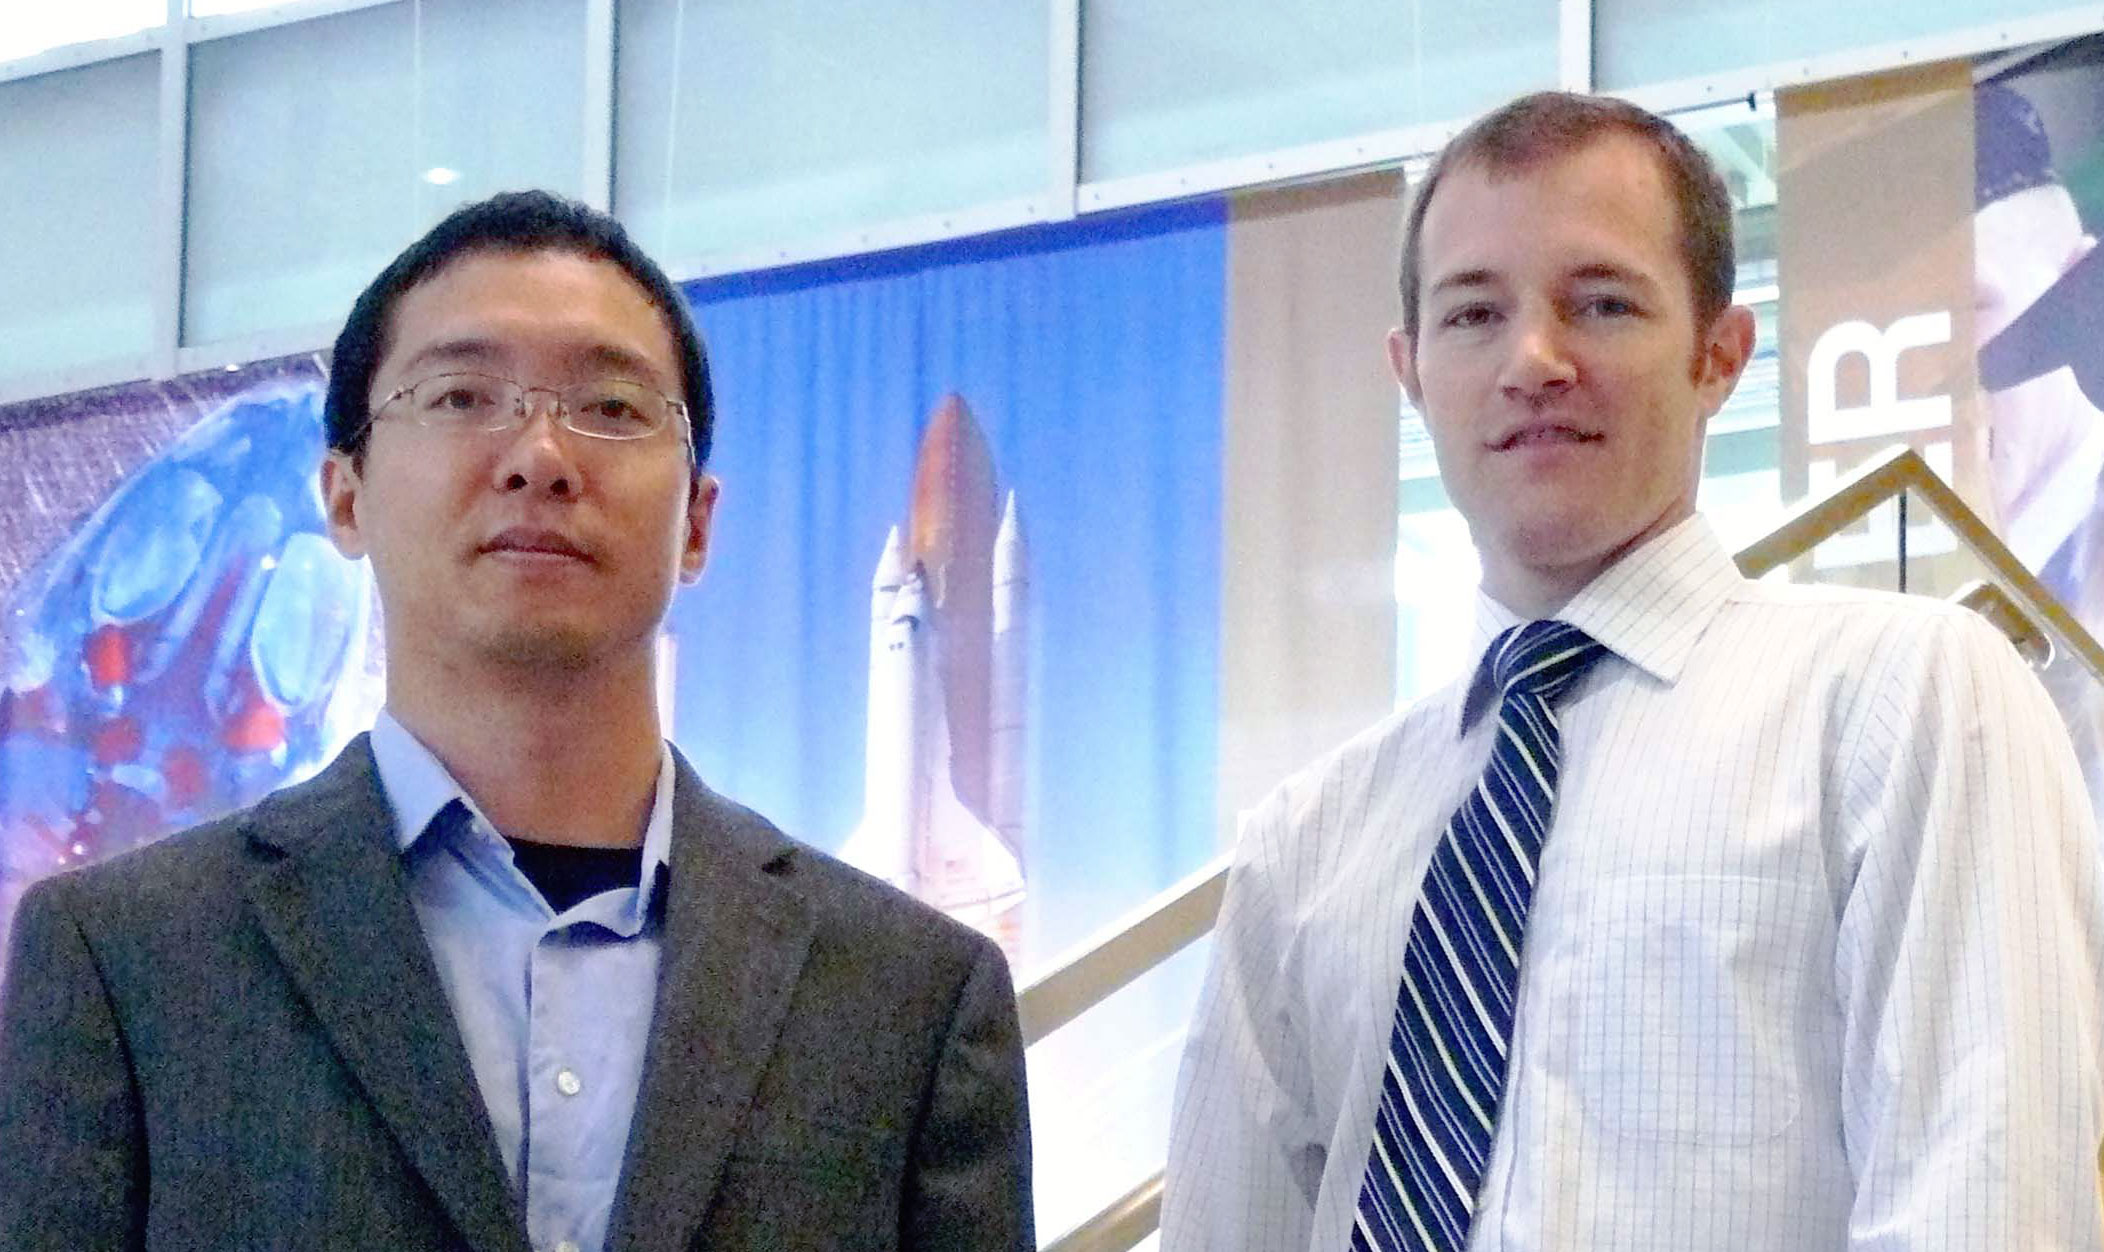 A proposal by Dr. Xiaodong Yang (left) and Dr. Joshua Rovey was selected for funding by the NASA Innovative Advanced Concepts program. Photo credit Brianna Bales